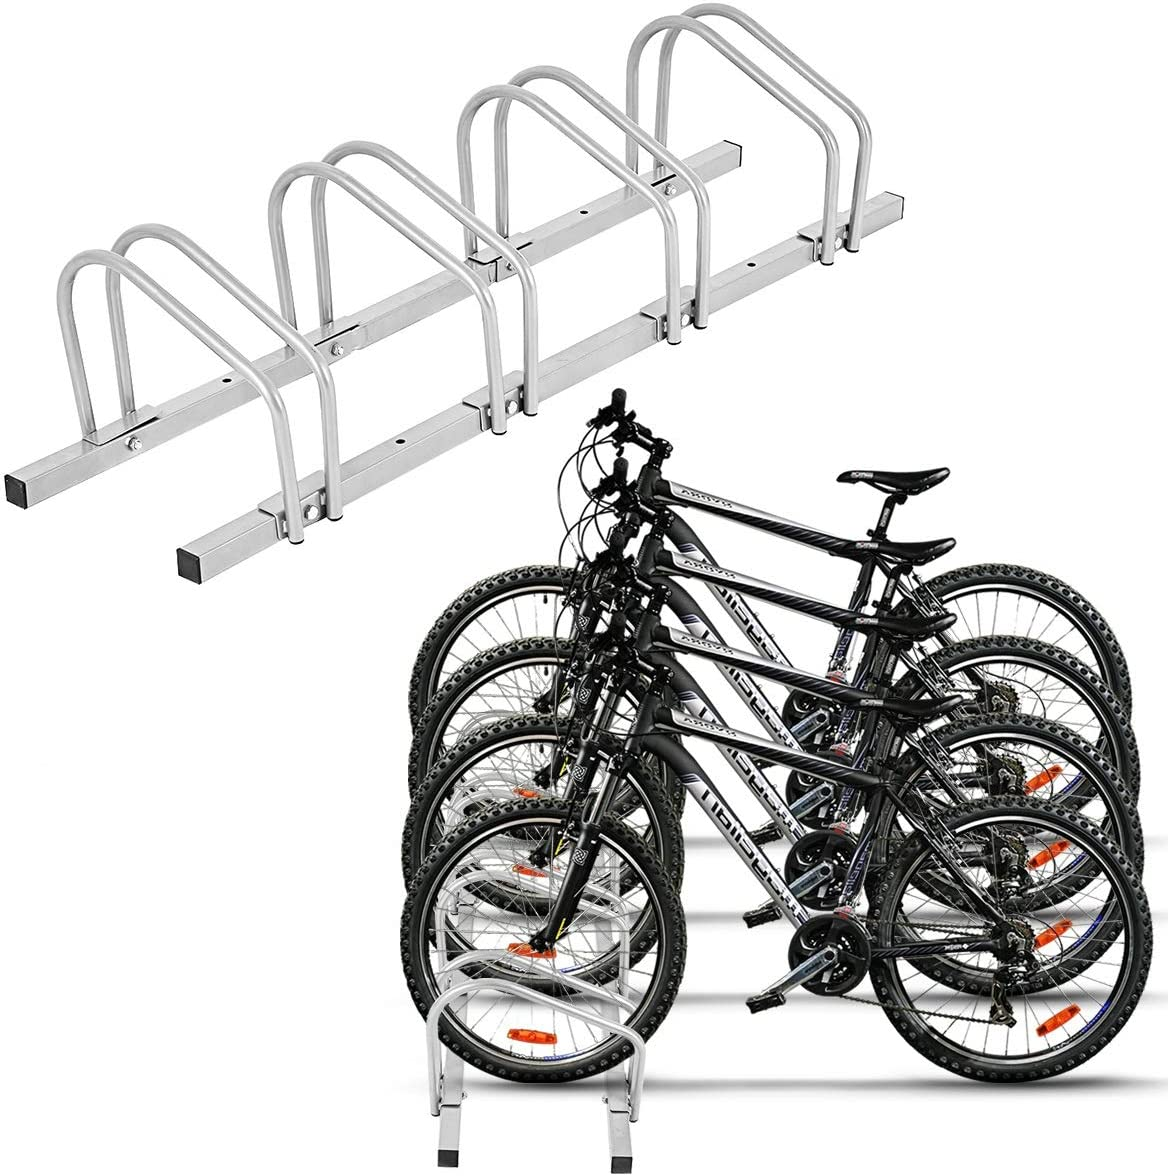 Set of 4 Bike Floor Parking Single Rack Home Storage Garage Bicycle Stands